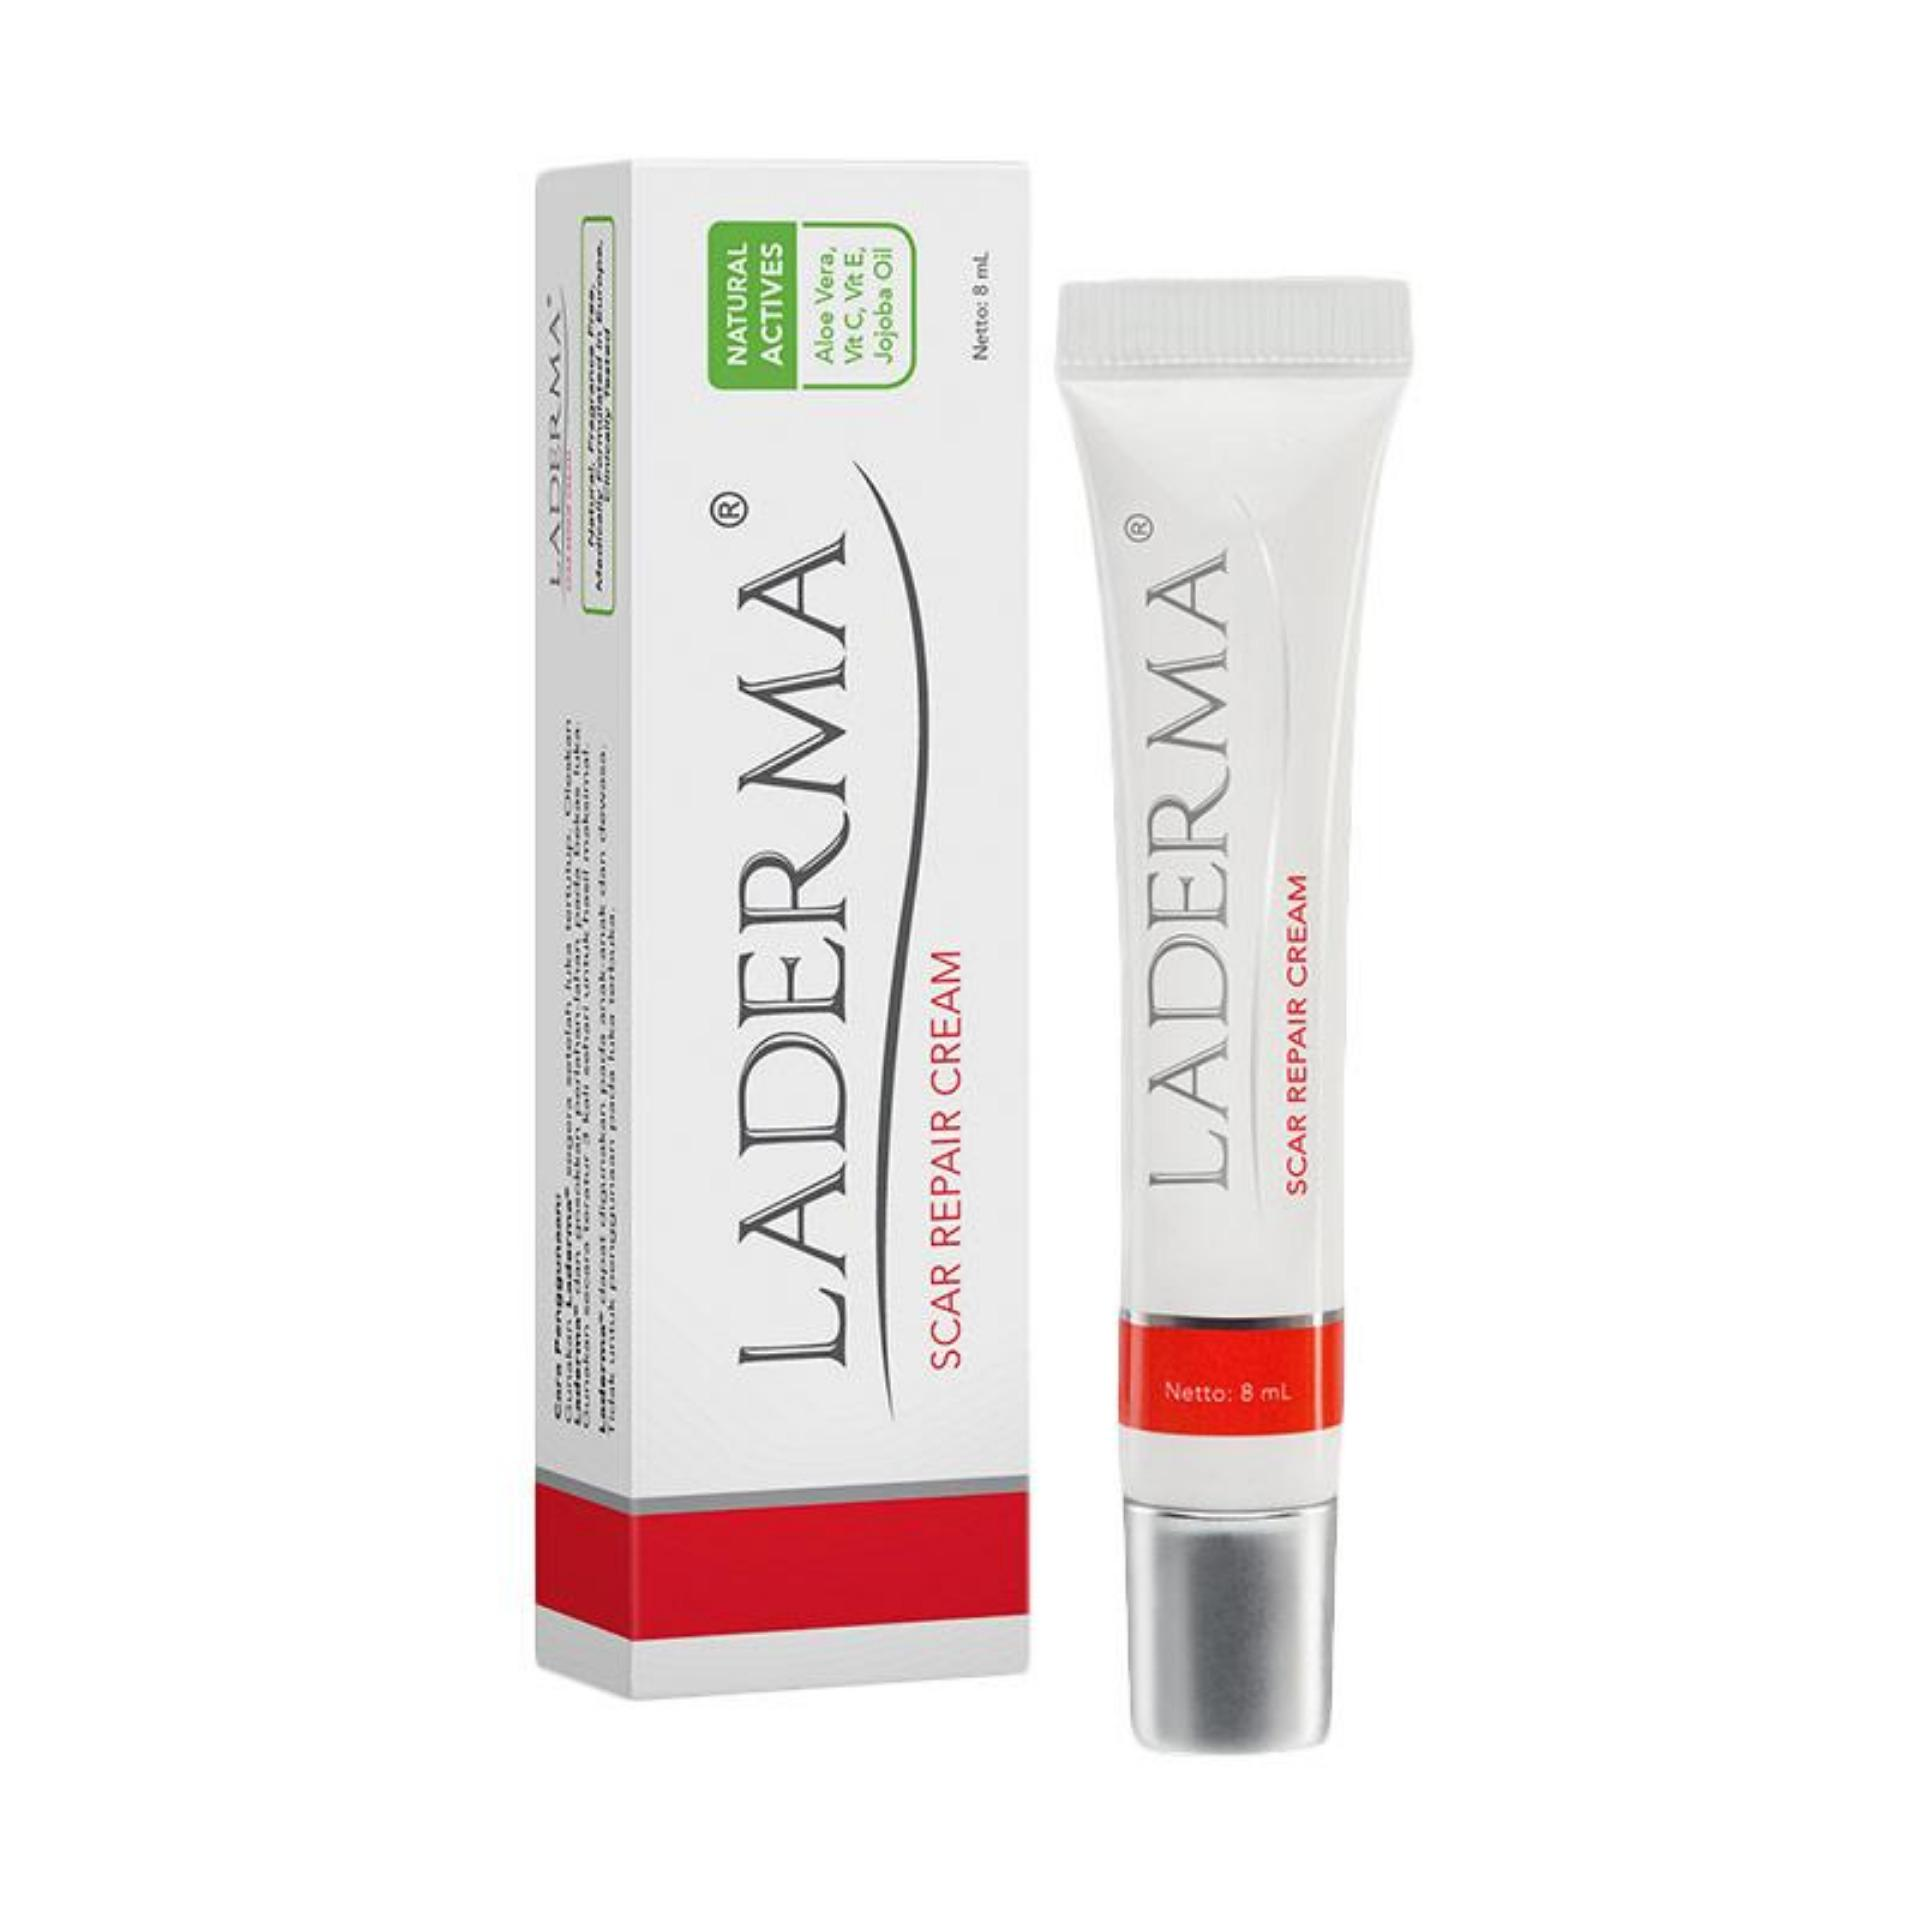 Laderma Scar Repair Cream - 8ml / Krim Penghilang Bekas Luka